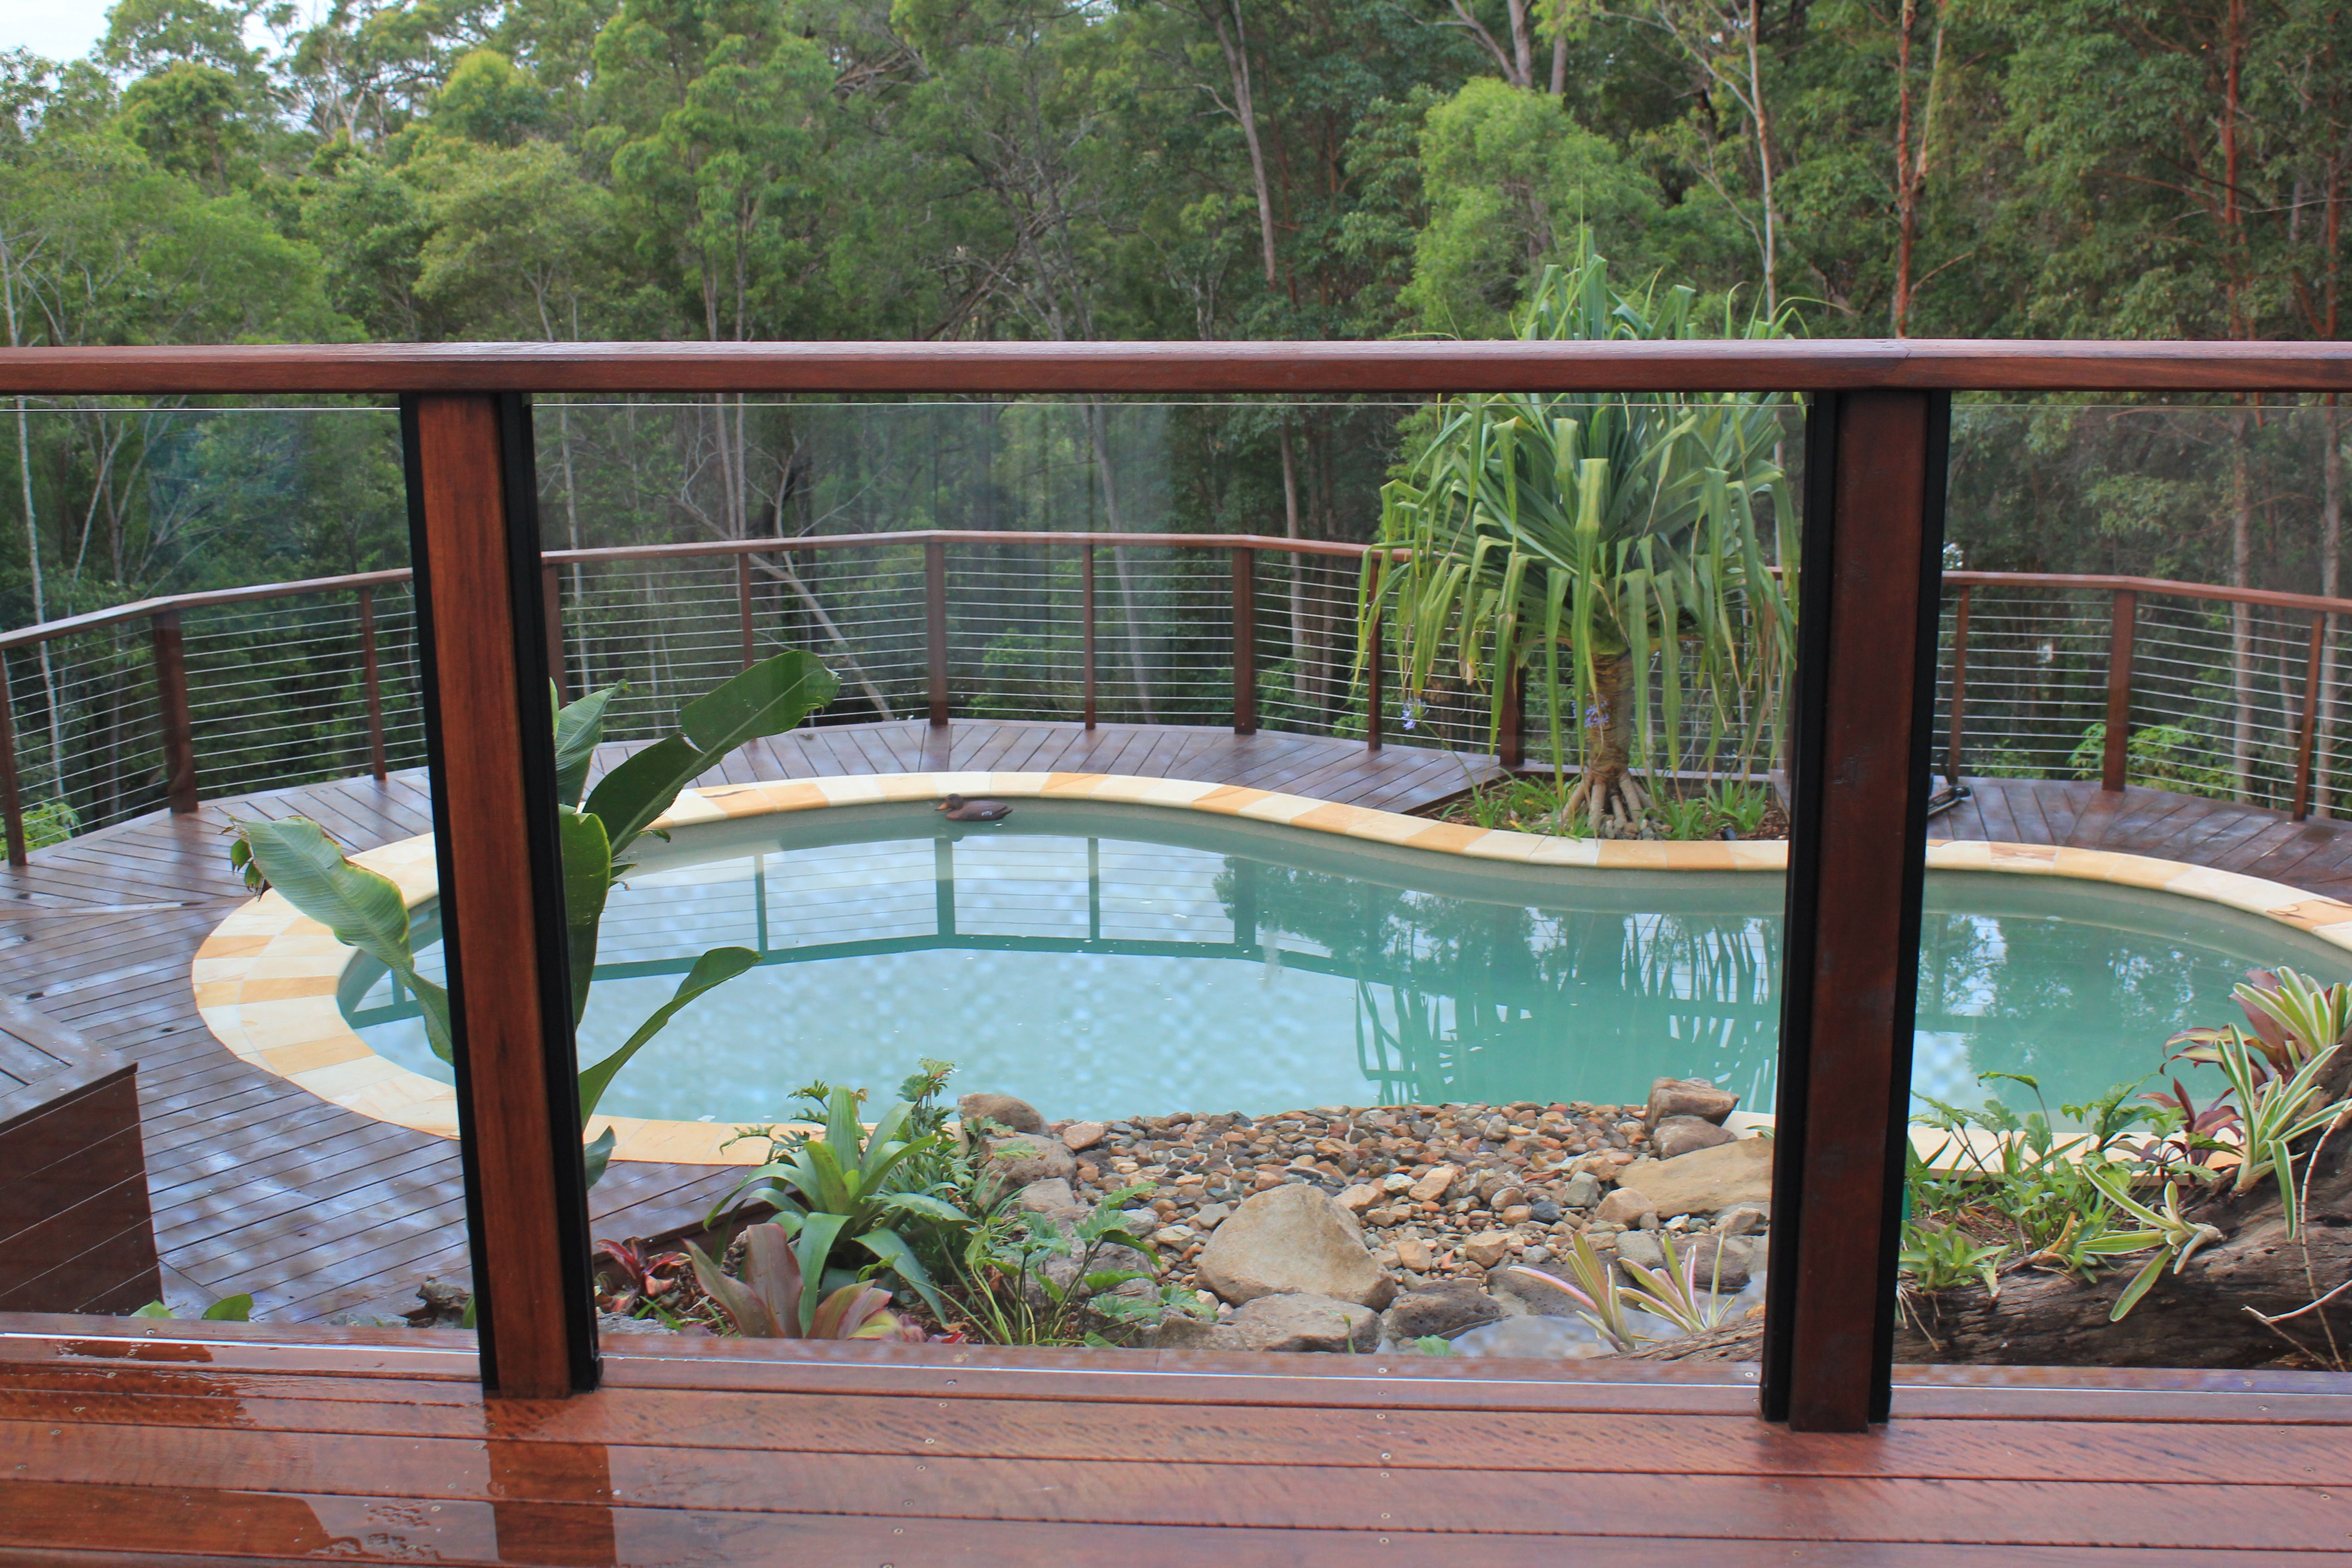 Exterior Appealing Steel Pool Ideas With Horizontal Bars And Flat Top Also Combine With Bricks Floor Stainless S Patio Balustrade Ideas Backyard Decks Backyard